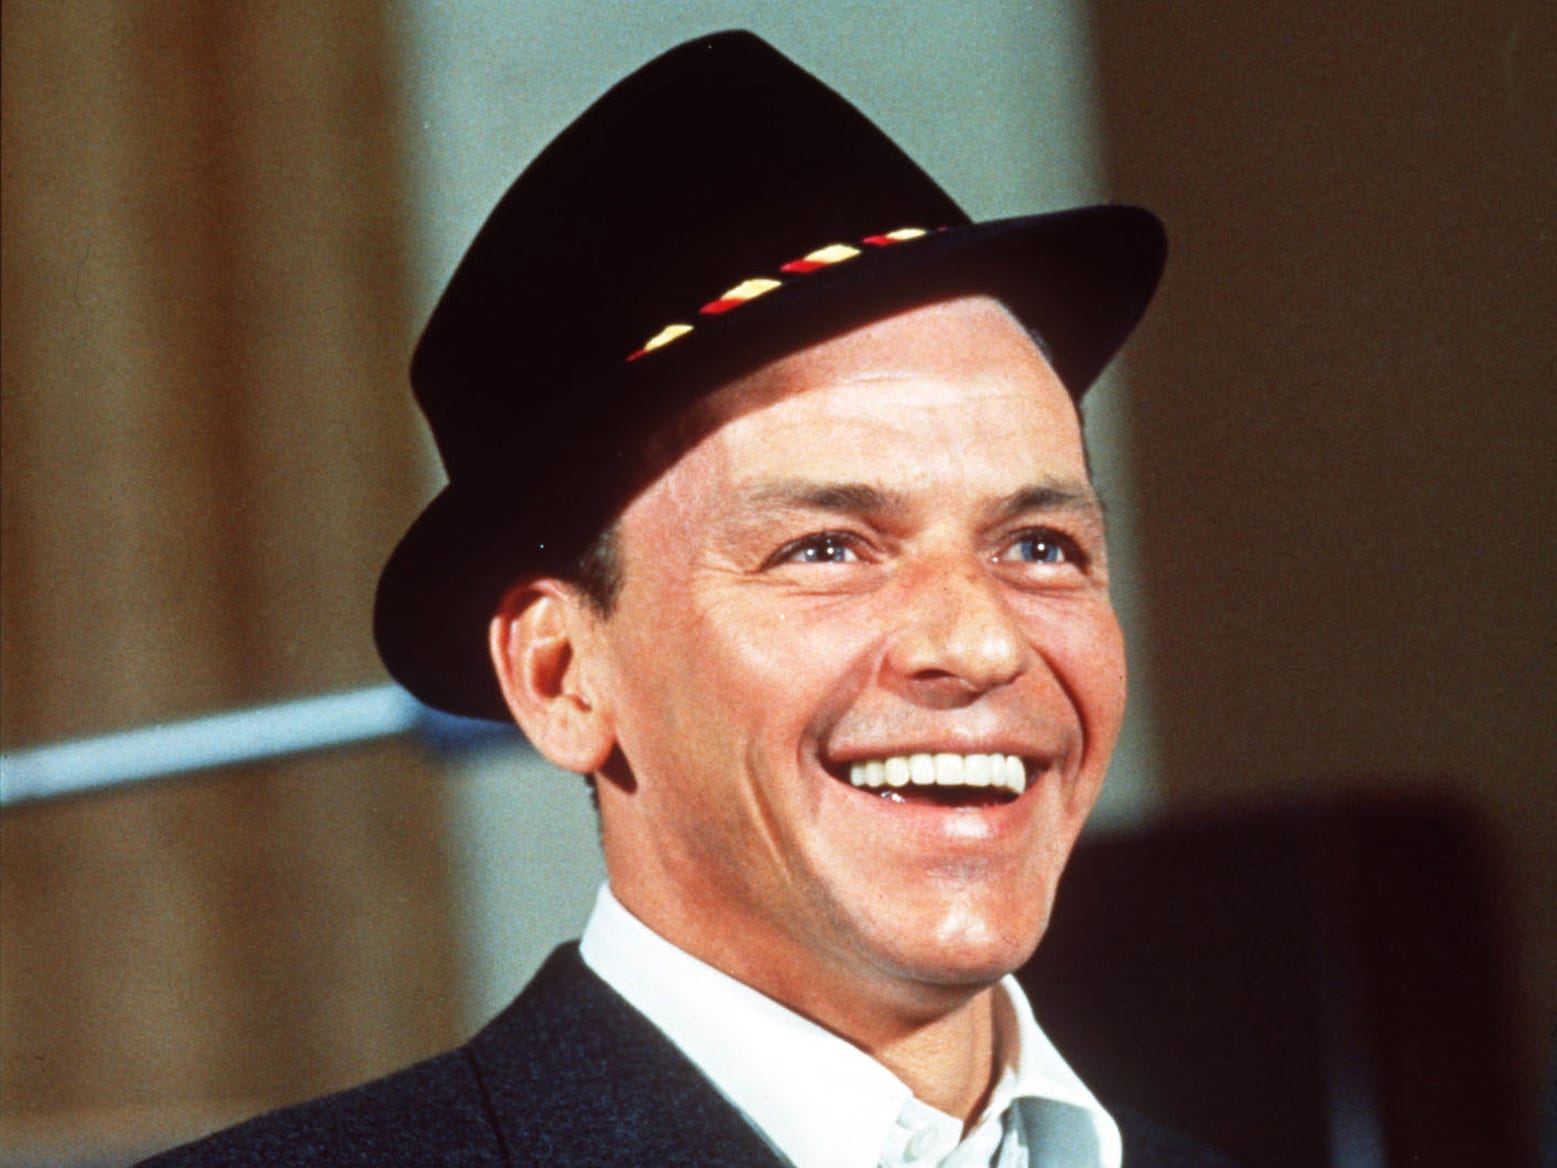 Dec. 15